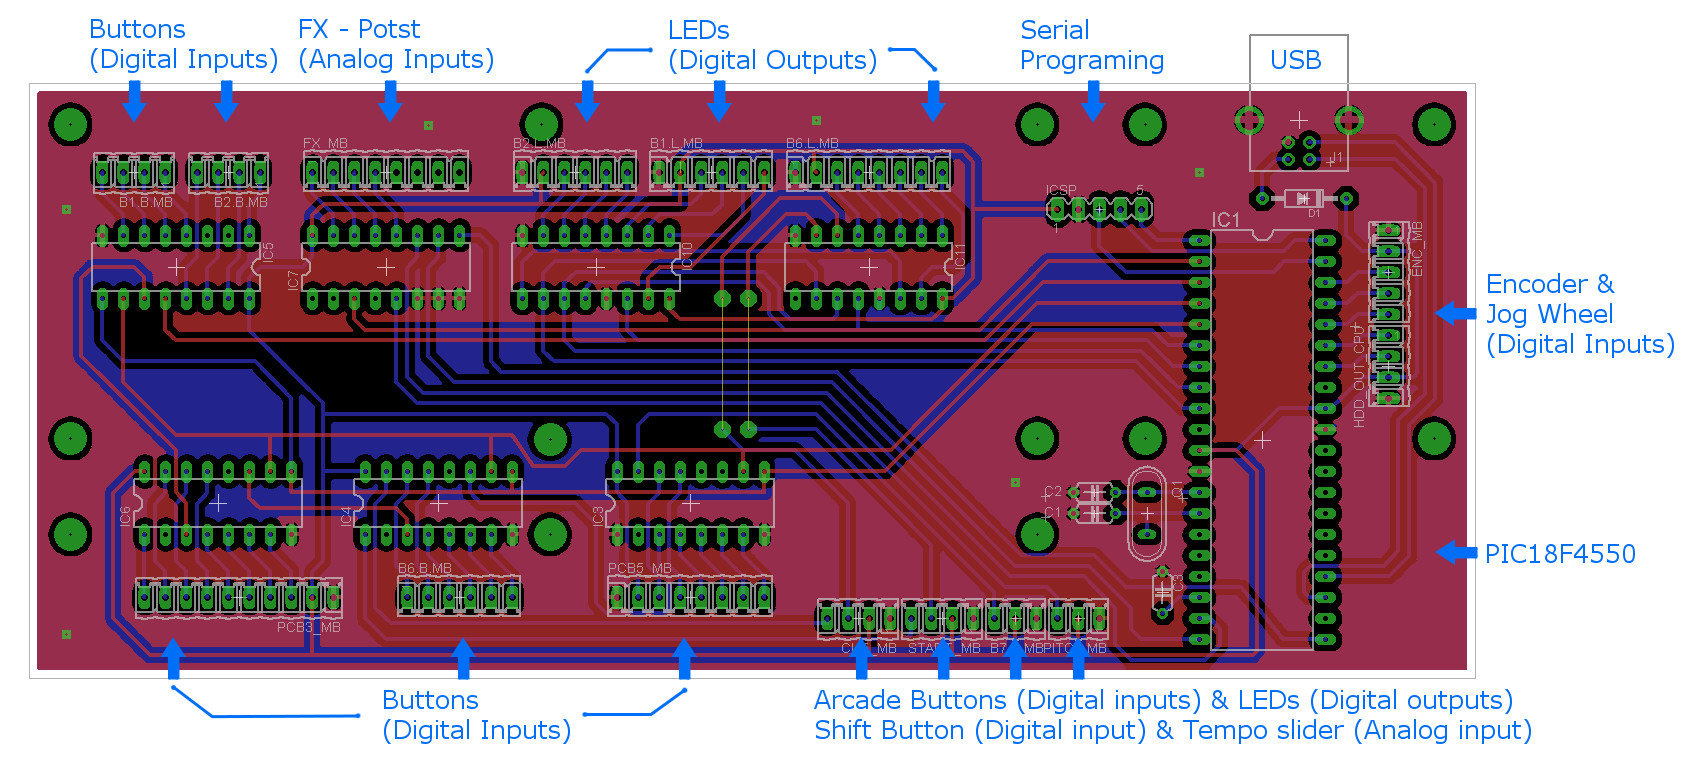 DIY MIDI DJ Deck controller - Main board PCB view with description of particular input / output connectors